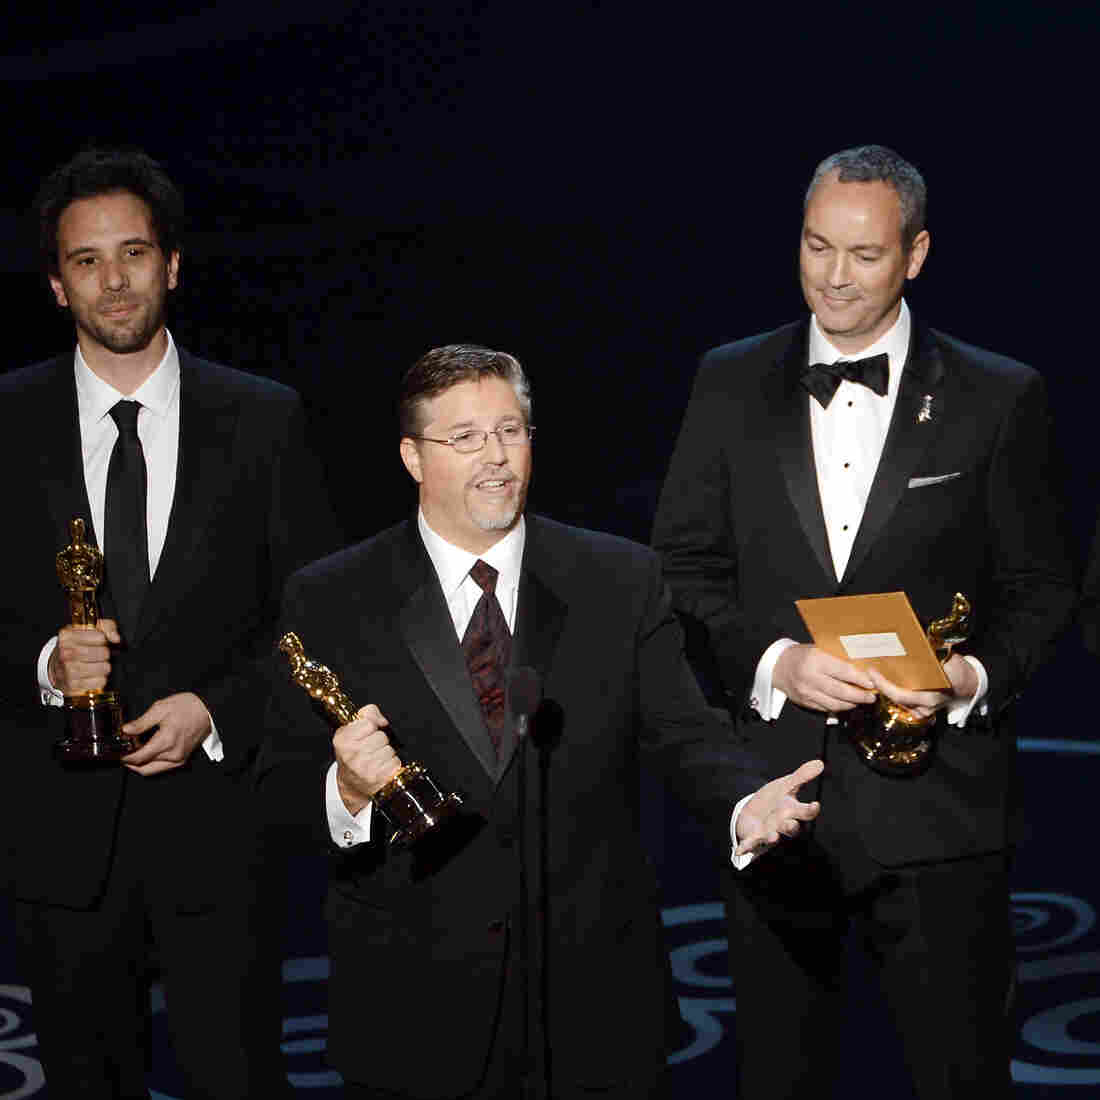 Guillaume Rocheron, Bill Westenhofer, Erik-Jan De Boer and Donald R. Elliott at the 85th Annual Academy Awards in February. Rhythm & Hues Studios, the company that produced the effects for winning film Life of Pi, recently declared bankruptcy.